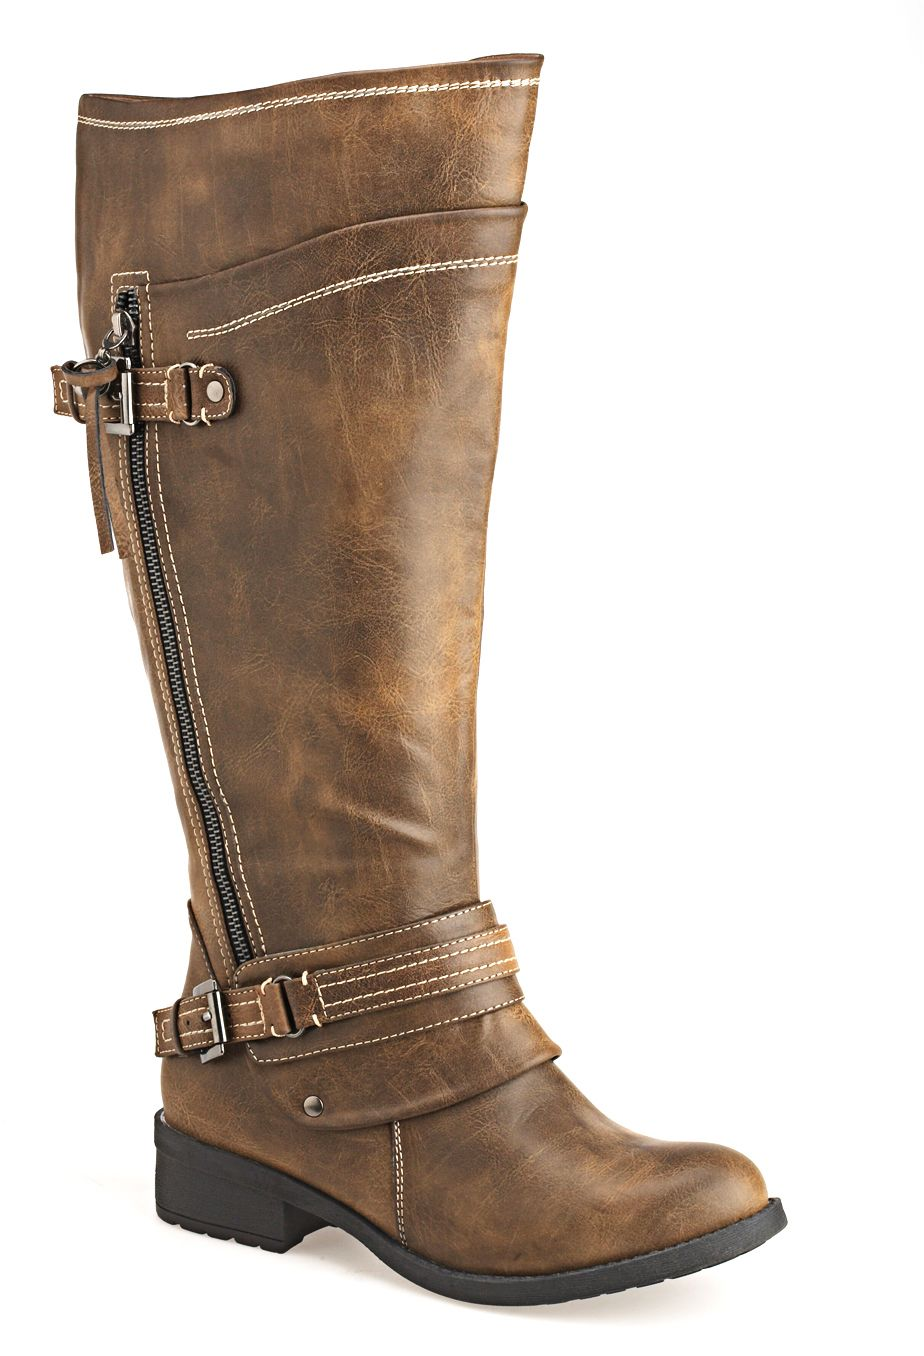 Womens Brinley Co Women's Bailey Riding Boot Regular Wide Calf For Sale Online Size 36